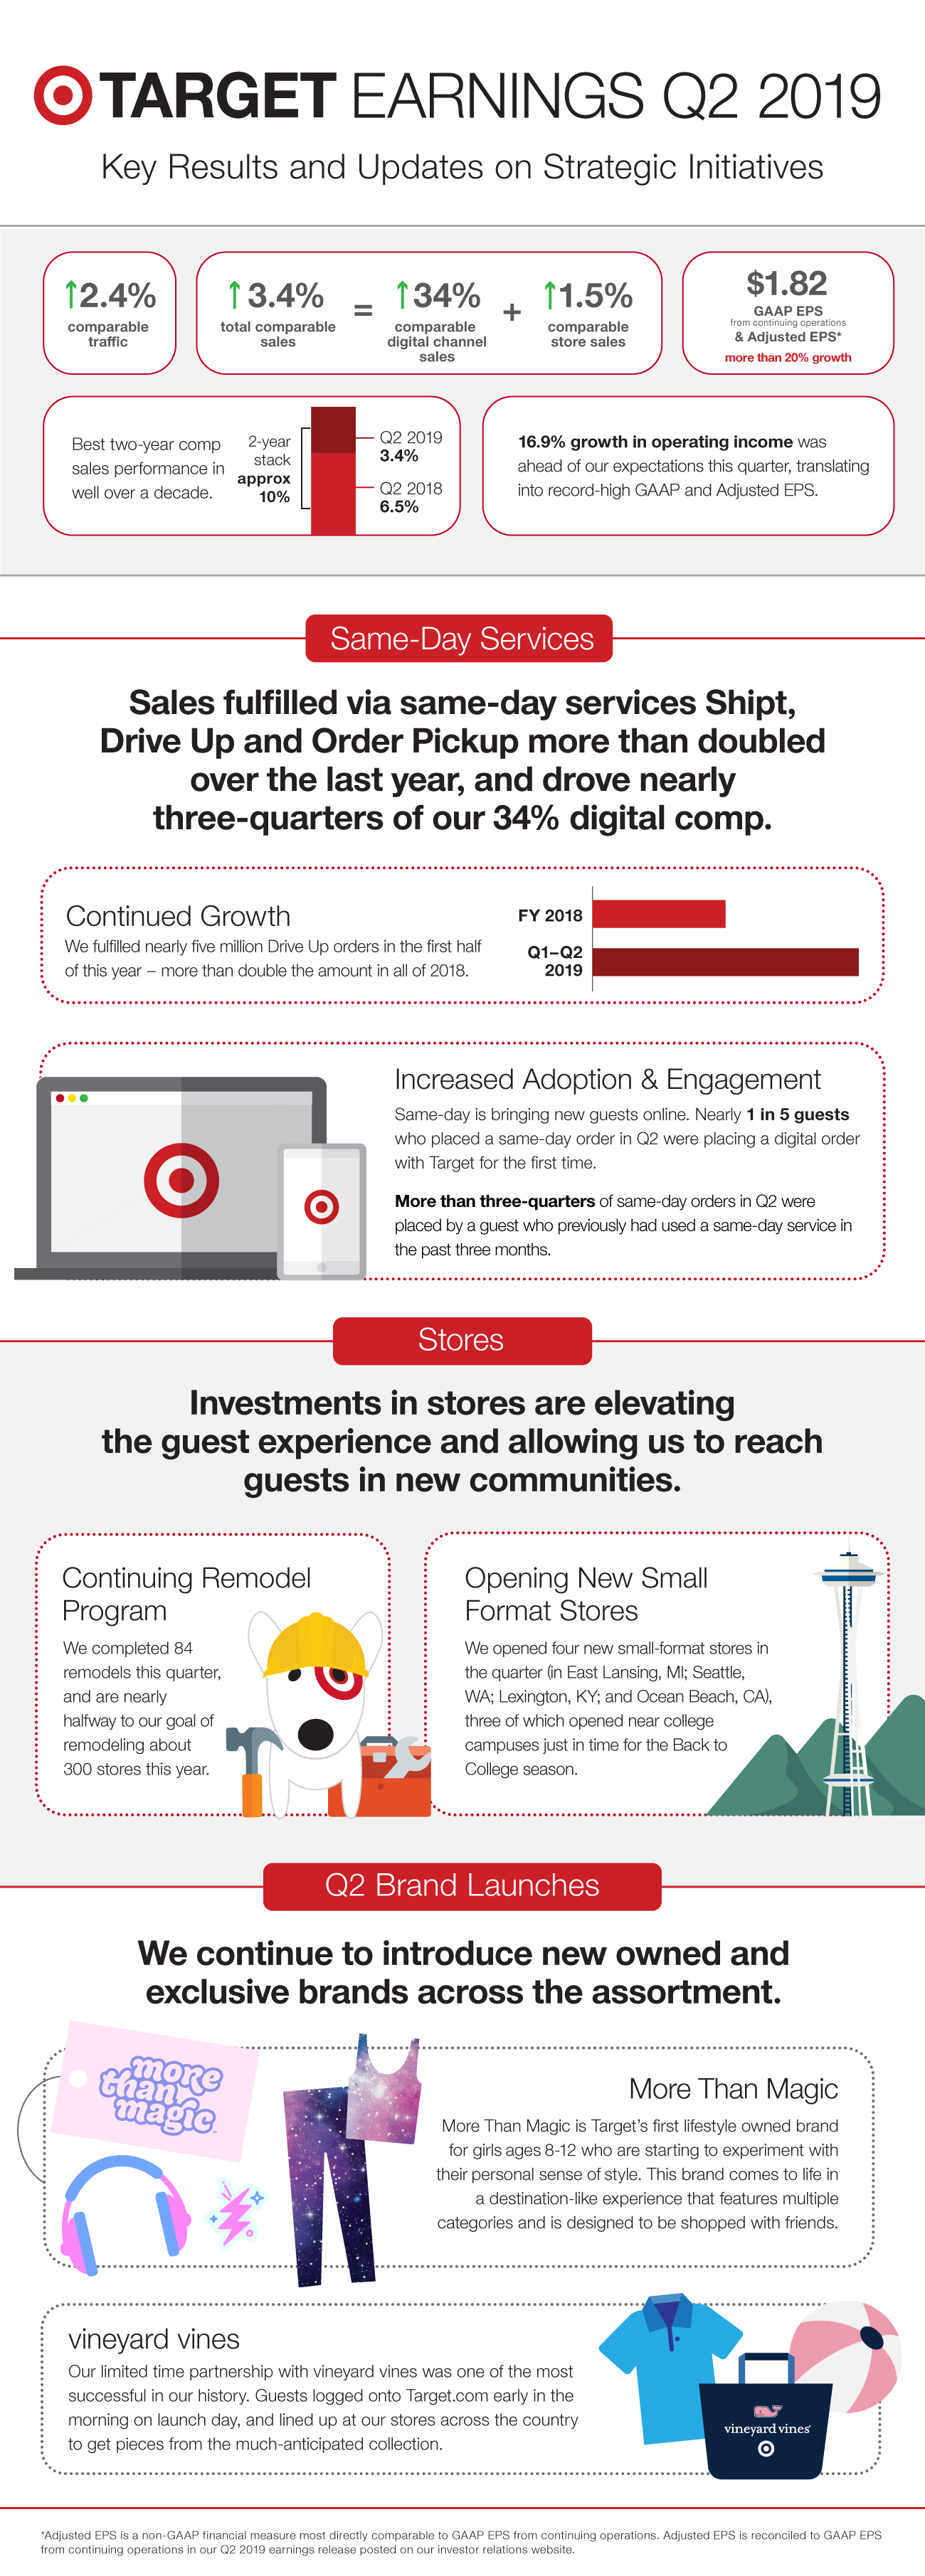 An infographic illustrating key Q2 results